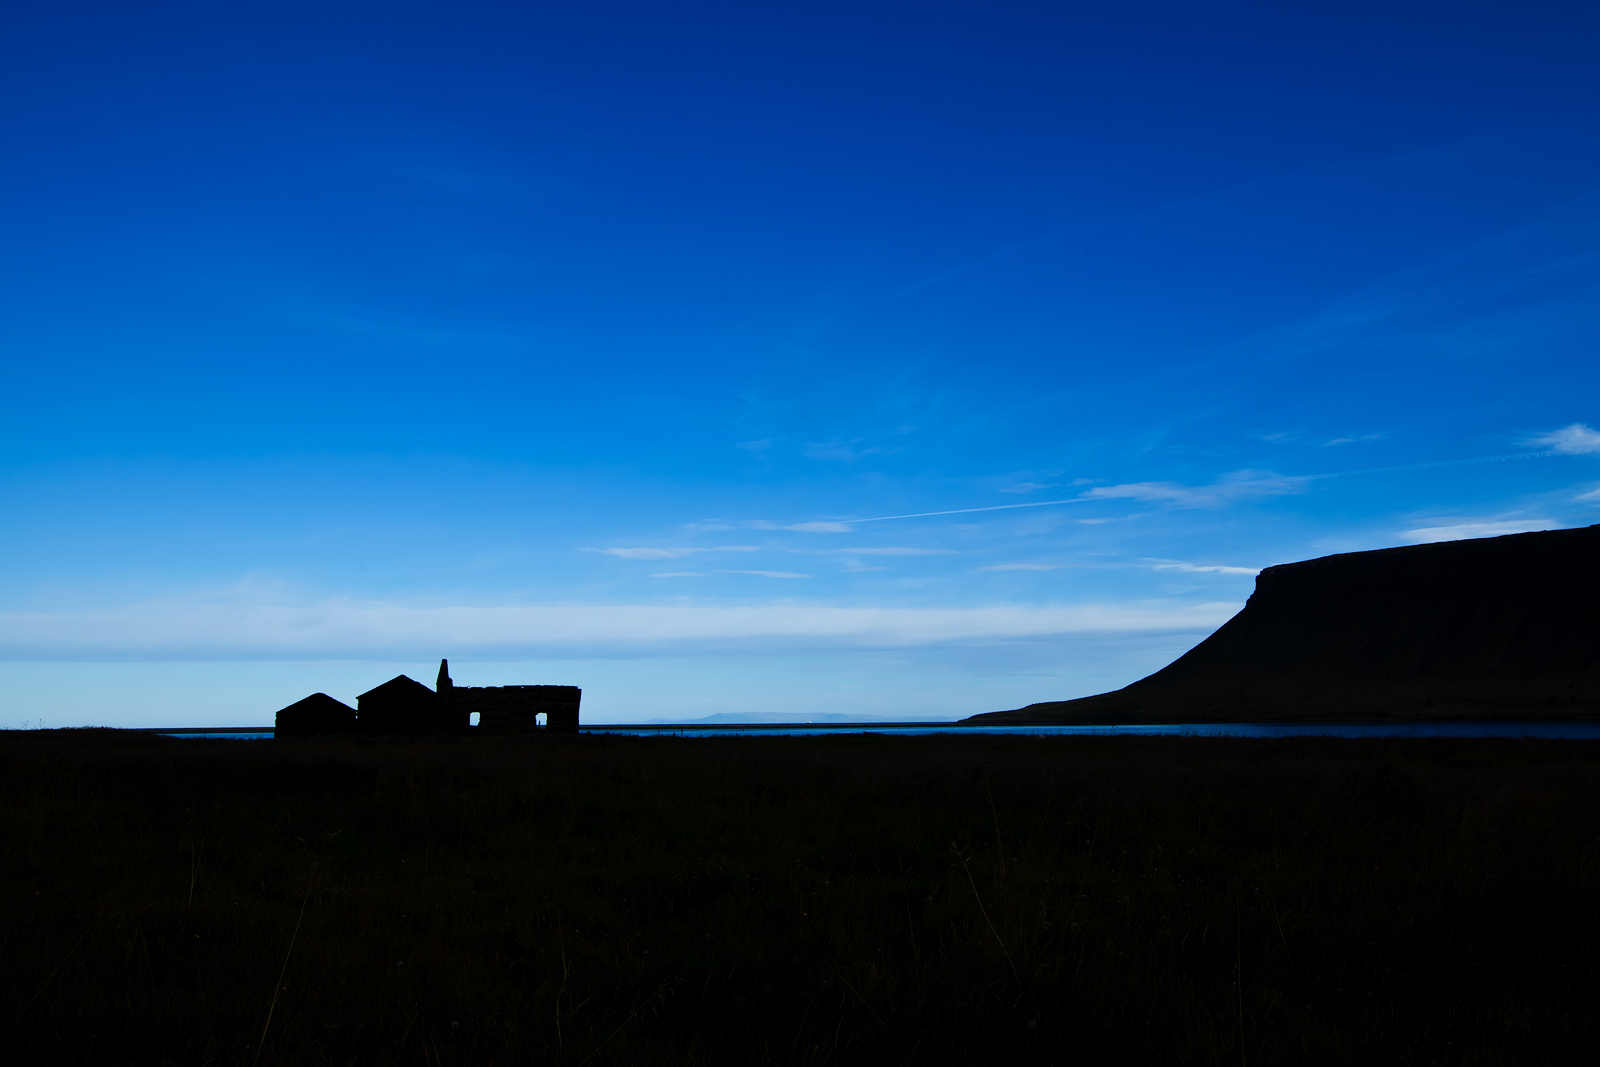 building,europe,horizontal,house,iceland,north america,peninsula,snæfellsnes,stone,united states,west,western,snæfellsnes, photo